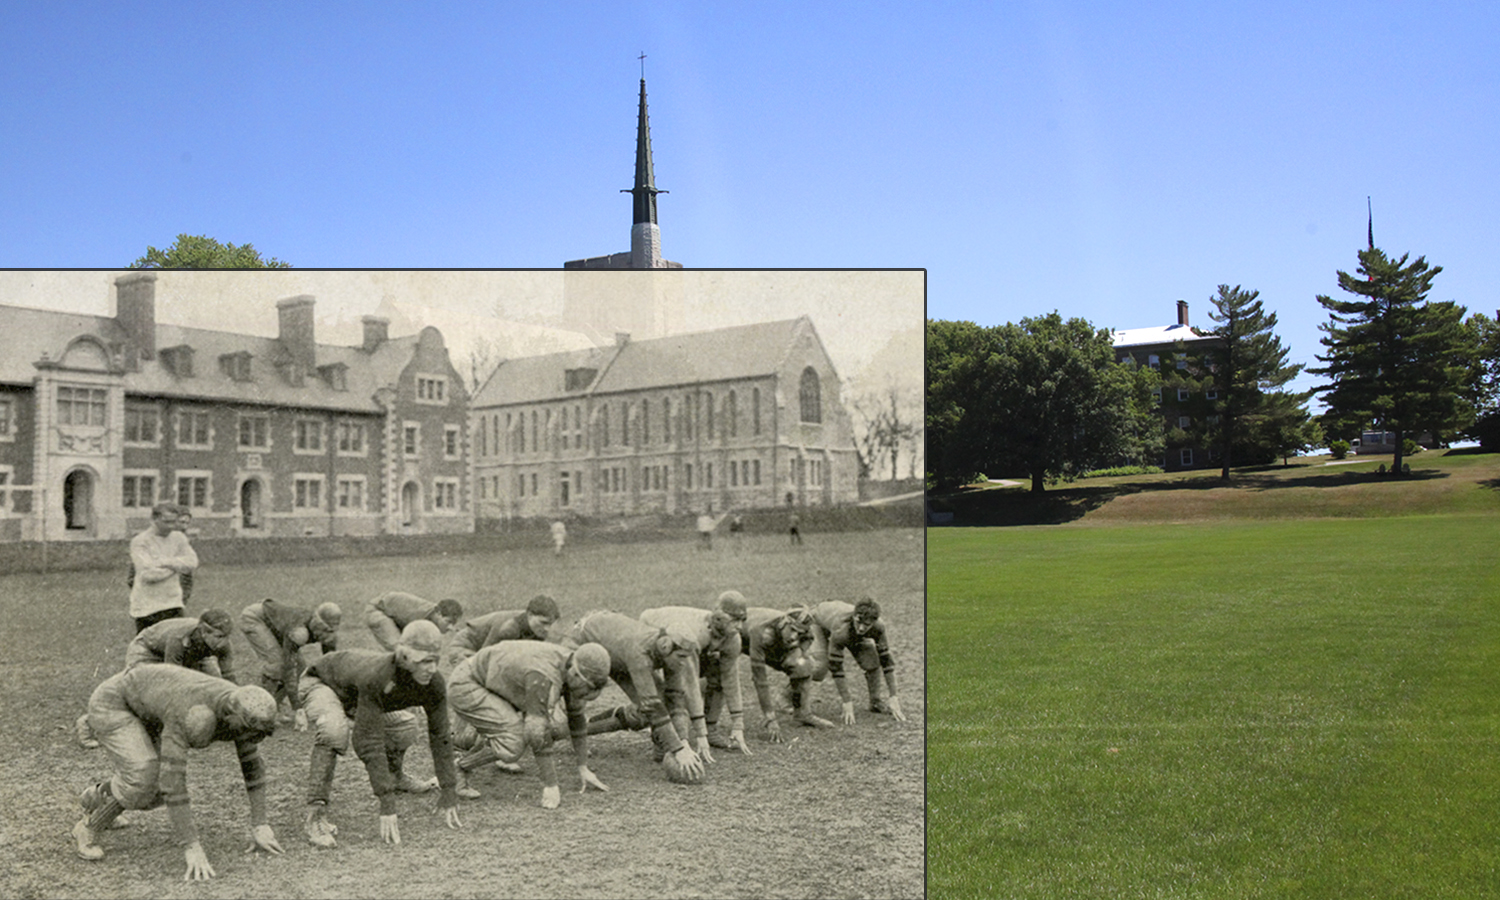 The Hobart football practiced on Quad in 1906. The teamâs current home, Boswell Field was built in 1974.